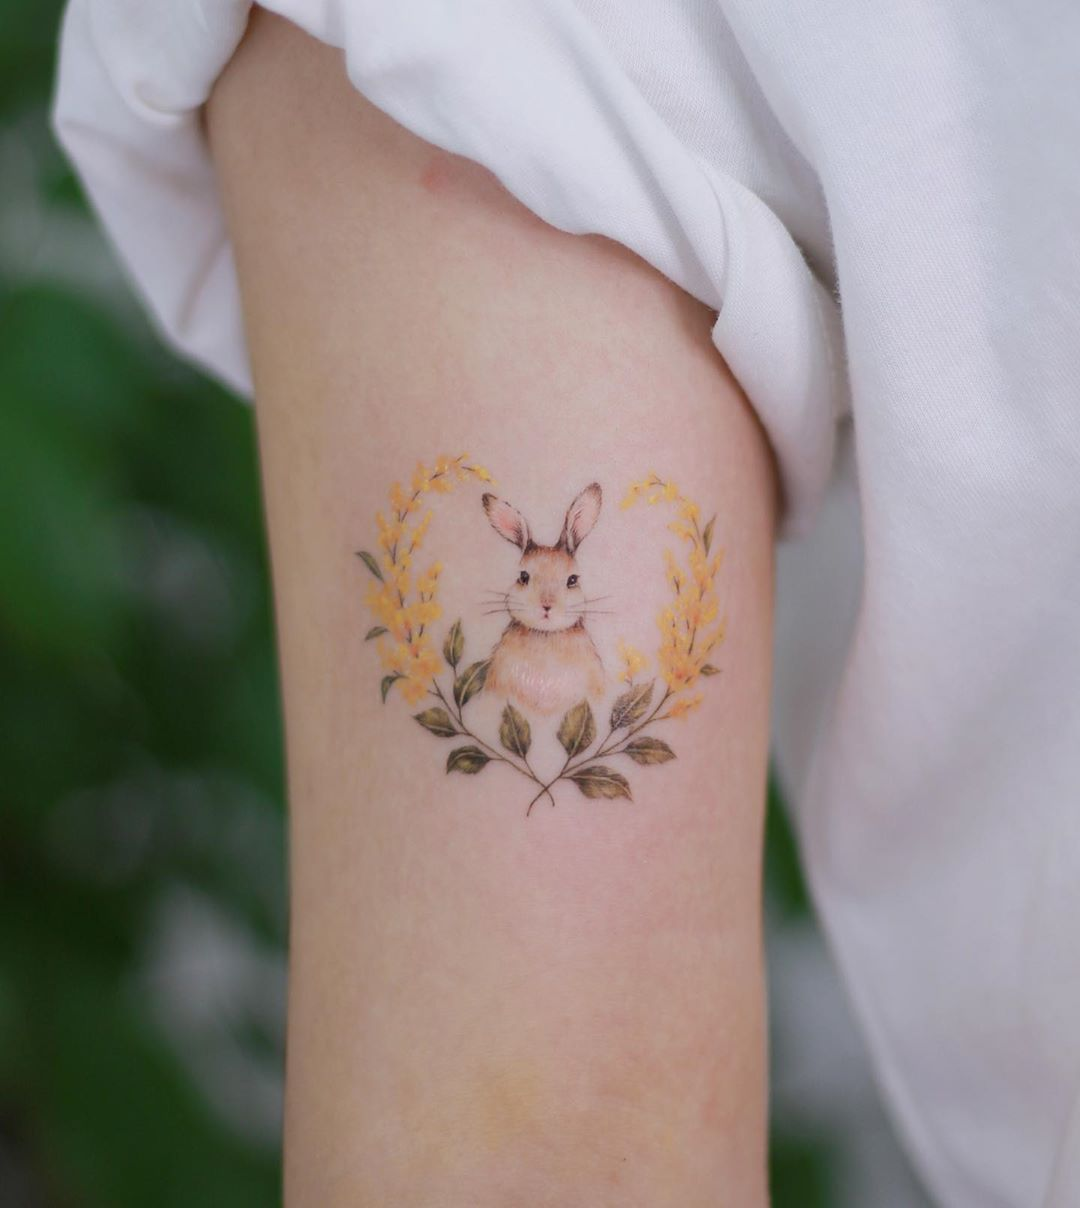 Bunny And Flowers Bunny Means Her And Golden Rod Means Her